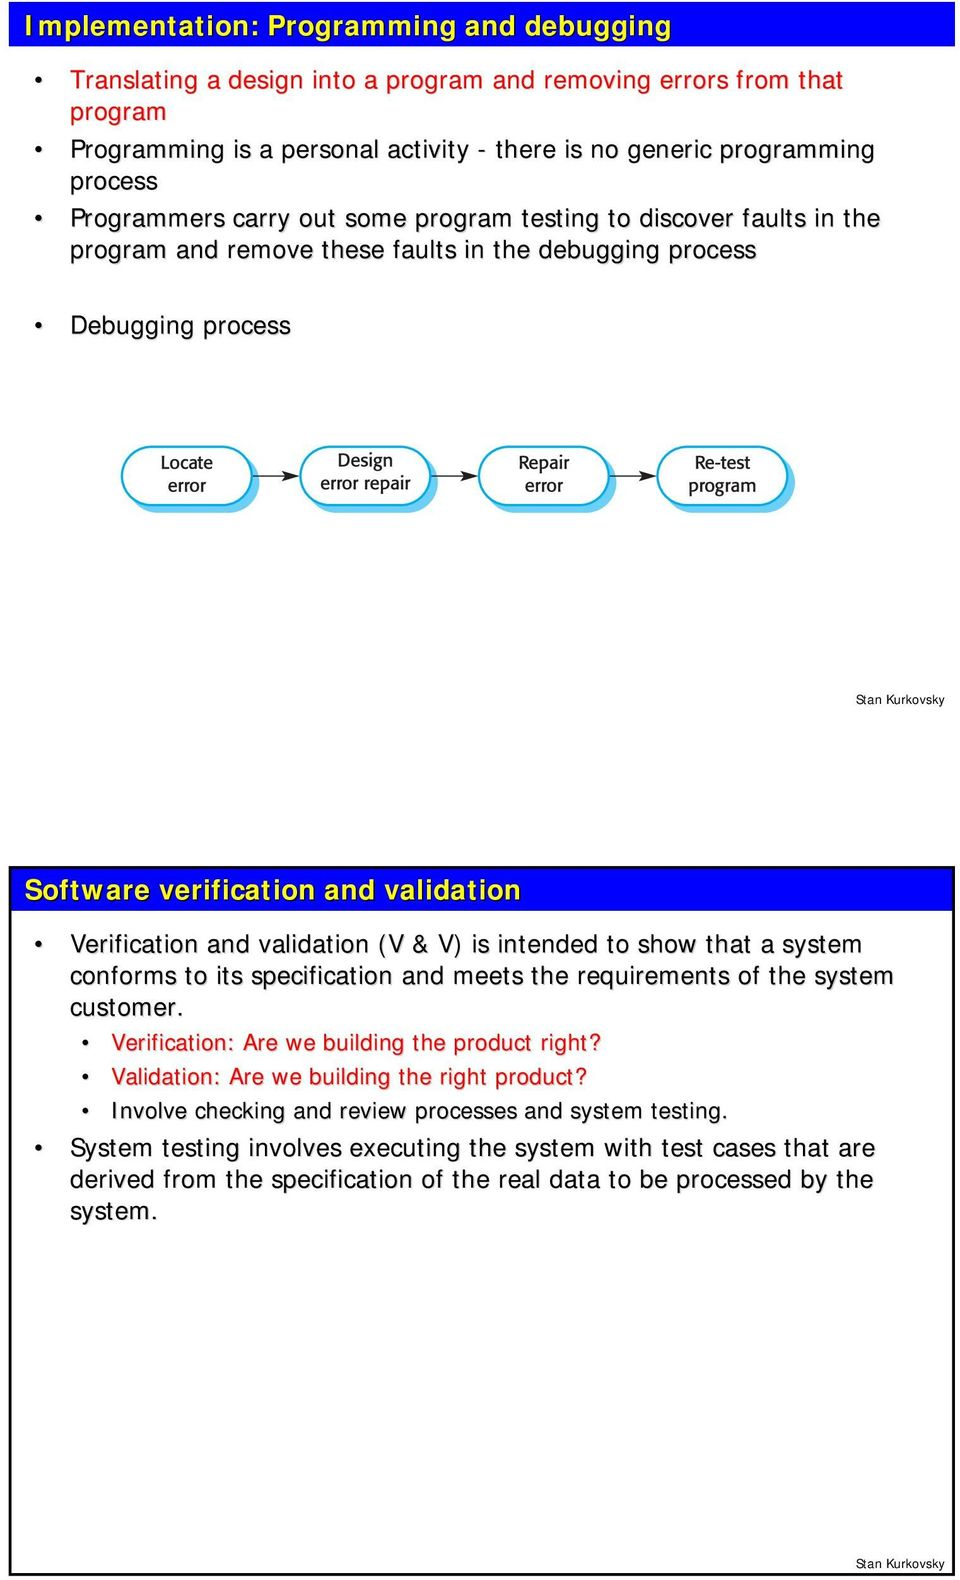 validation (V & V) is intended to show that a system s conforms to its specification and meets the requirements of the system customer. Verification: Are we building the product right?